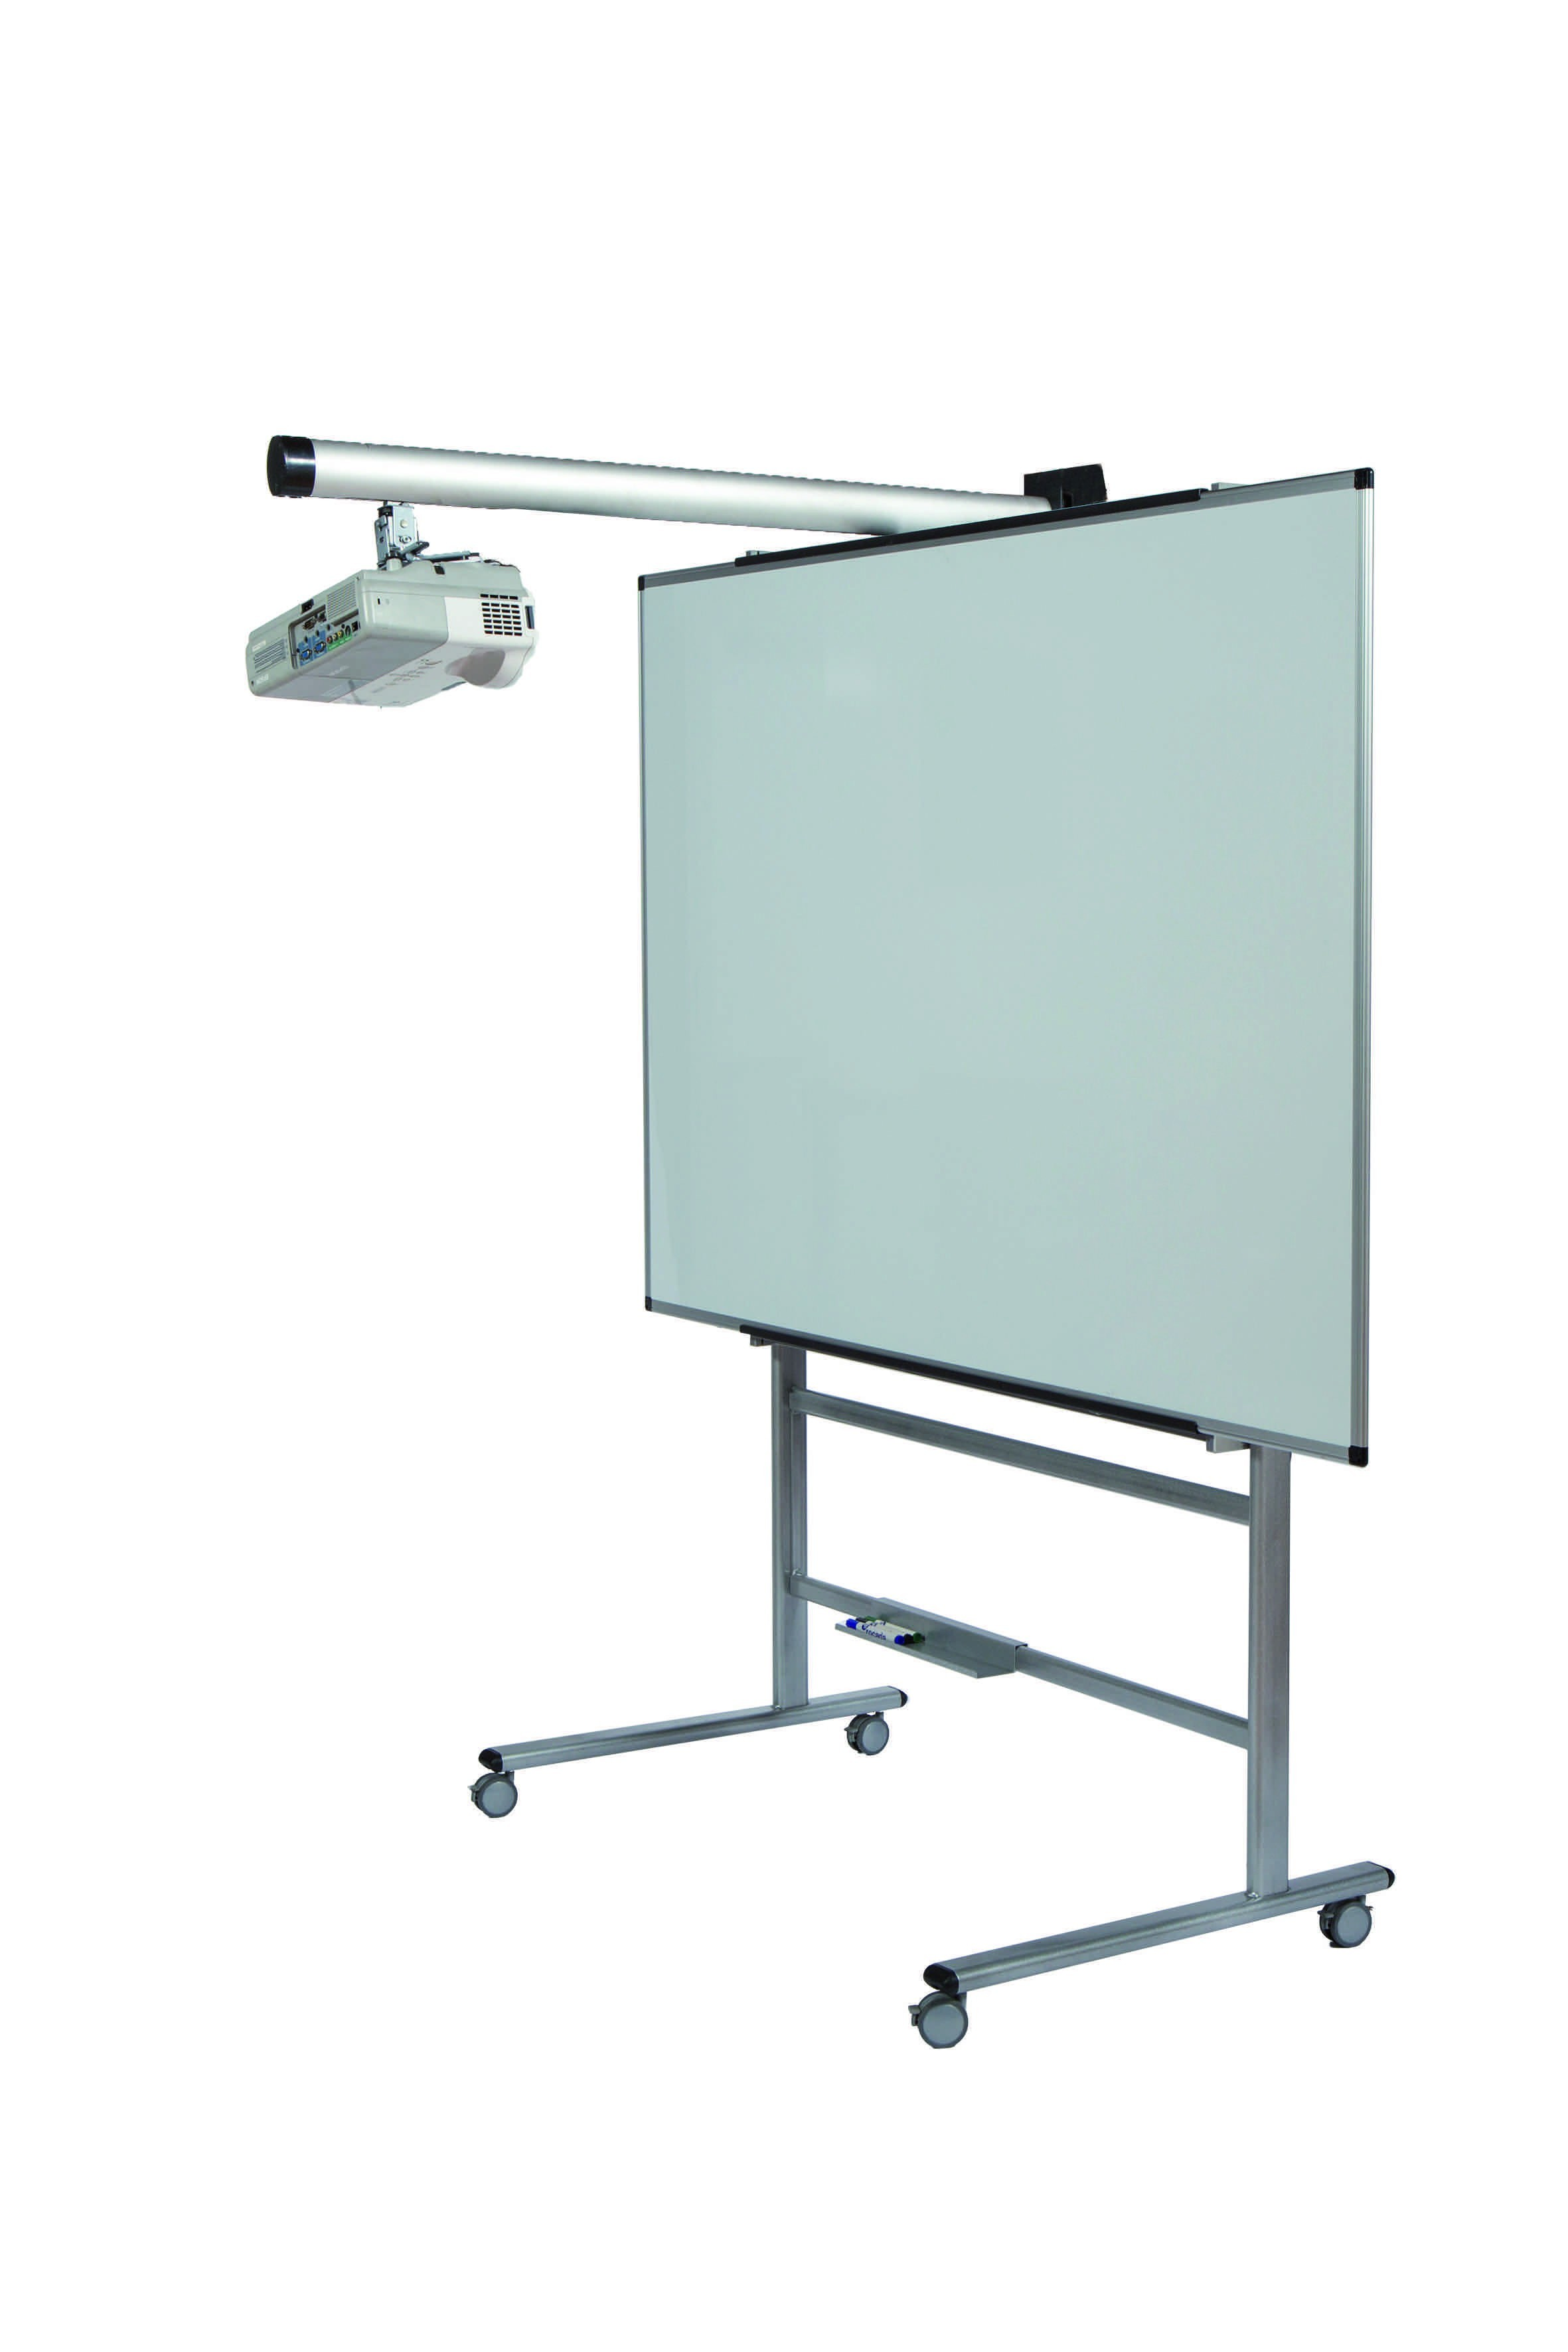 ADJUSTABLE MOBILE SUPPORT UP & DOWN FOR SLATE WALL